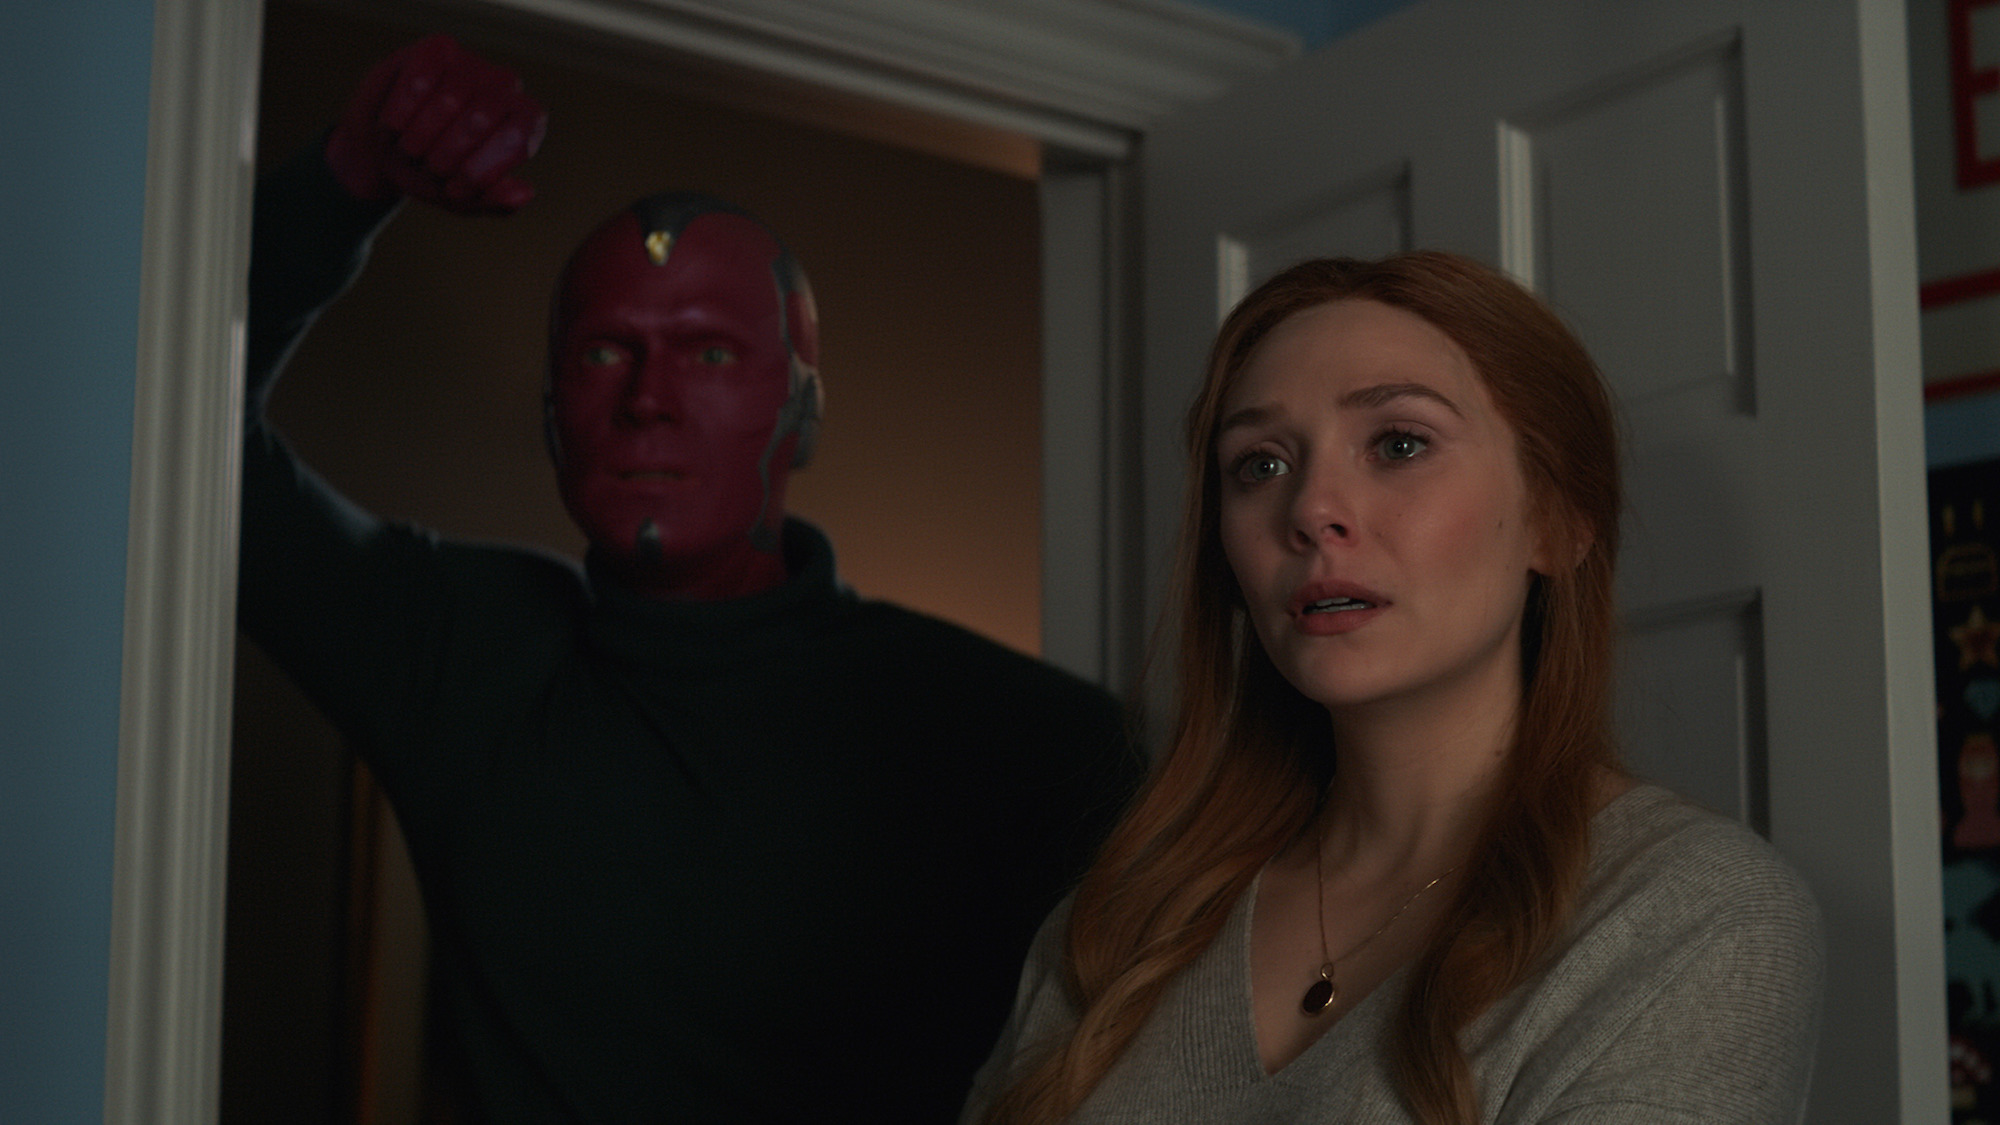 Paul Bettany as Vision and Elizabeth Olsen as Wanda Maximoff in 'WandaVision''s finale